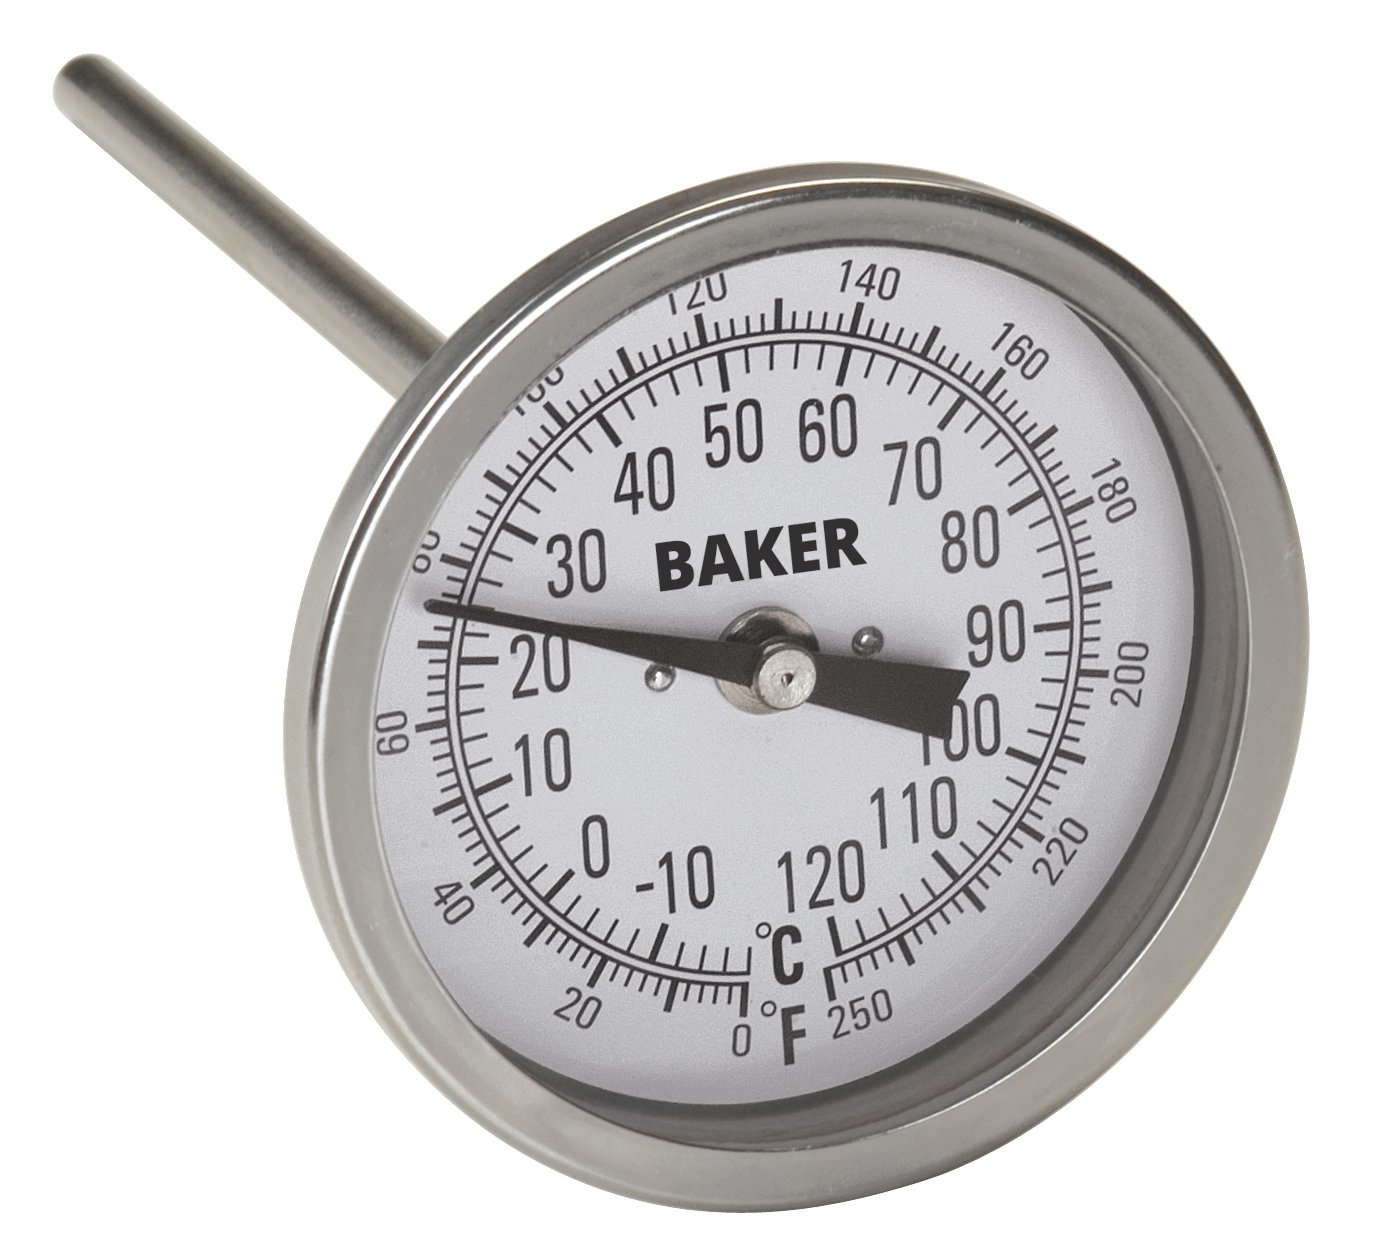 Baker Instruments T300 Series Stainless Steel Bi Metal Thermometer 0 to 250°F (-20 to 120°C), 6'' Stem, 1/2'' NPT Straight Connection, 3'' Dial